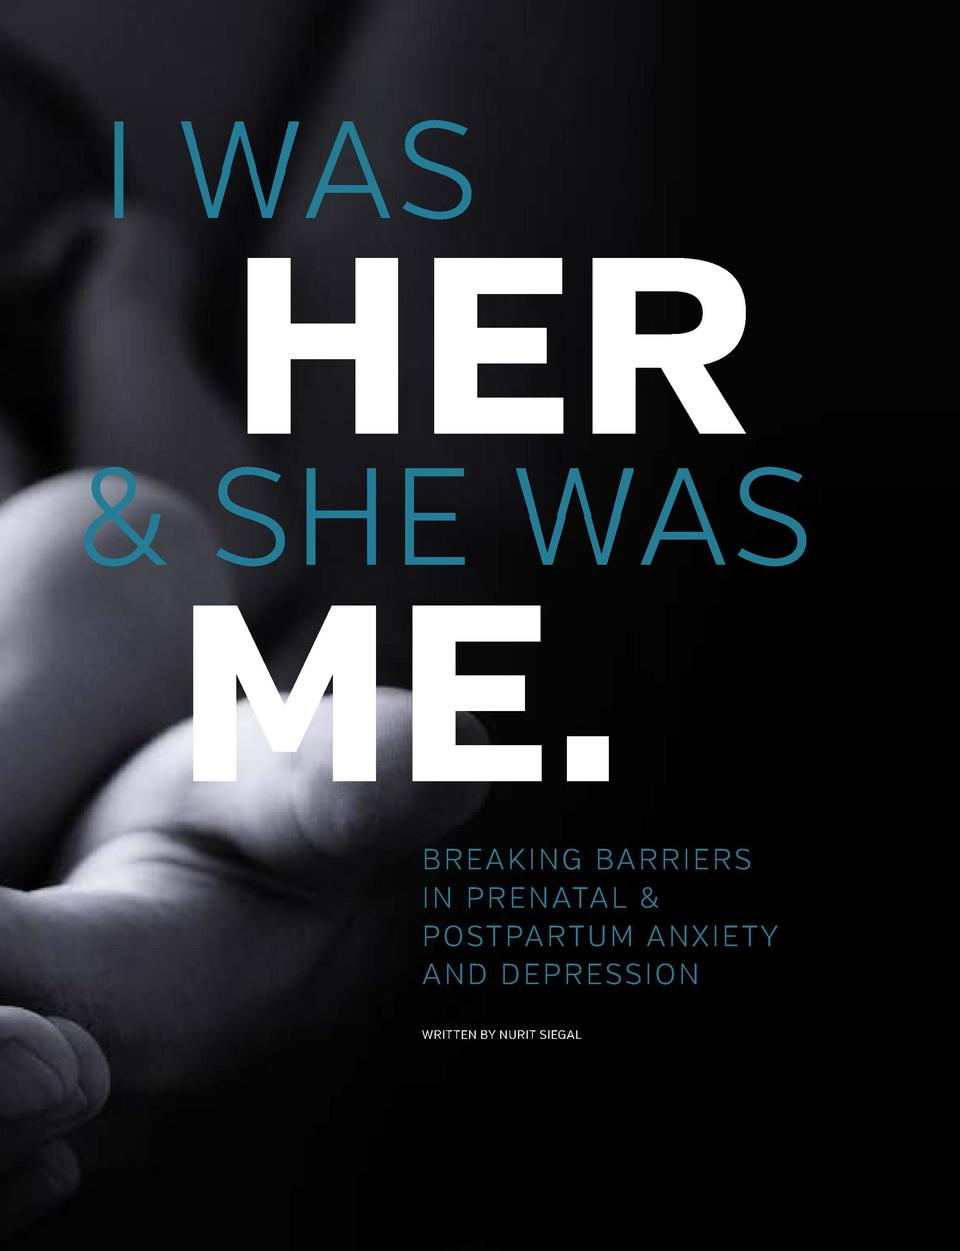 I WAS  HER   SHE WAS ME. BREAKING BARRIERS IN PRENATAL   POSTPARTUM ANXIETY AND DEPRESSION WRITTEN BY NURIT SIEGAL